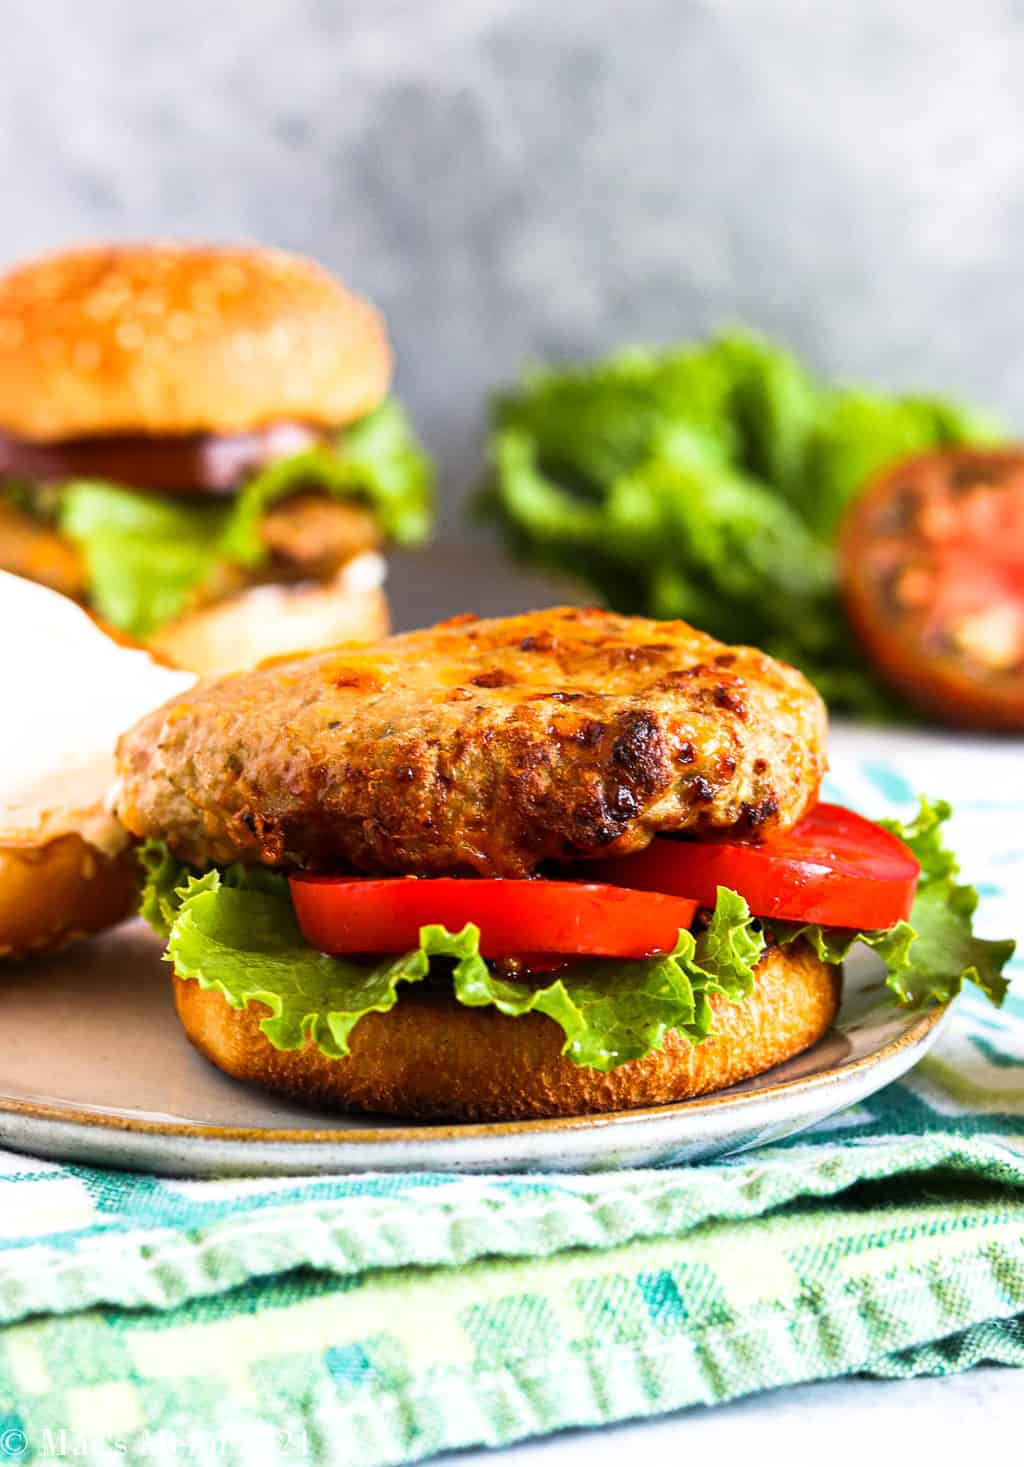 An air fryer turkey burger on a bun with lettuce and tomato